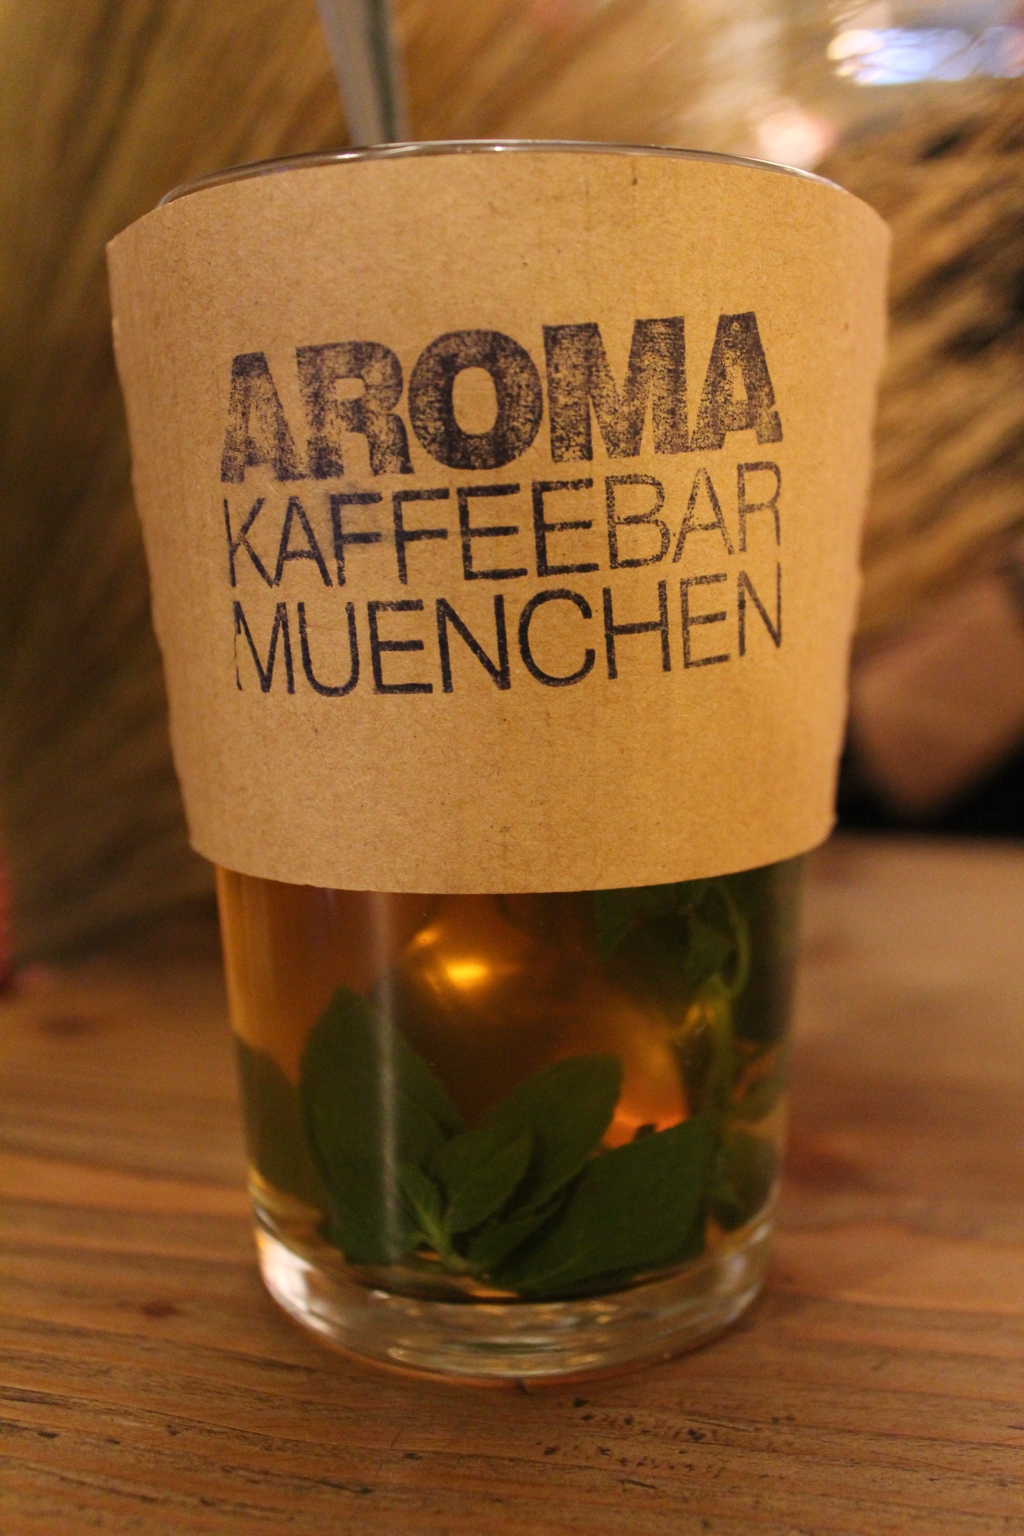 Aroma Kafeebar, Munich, by Packing my Suitcase